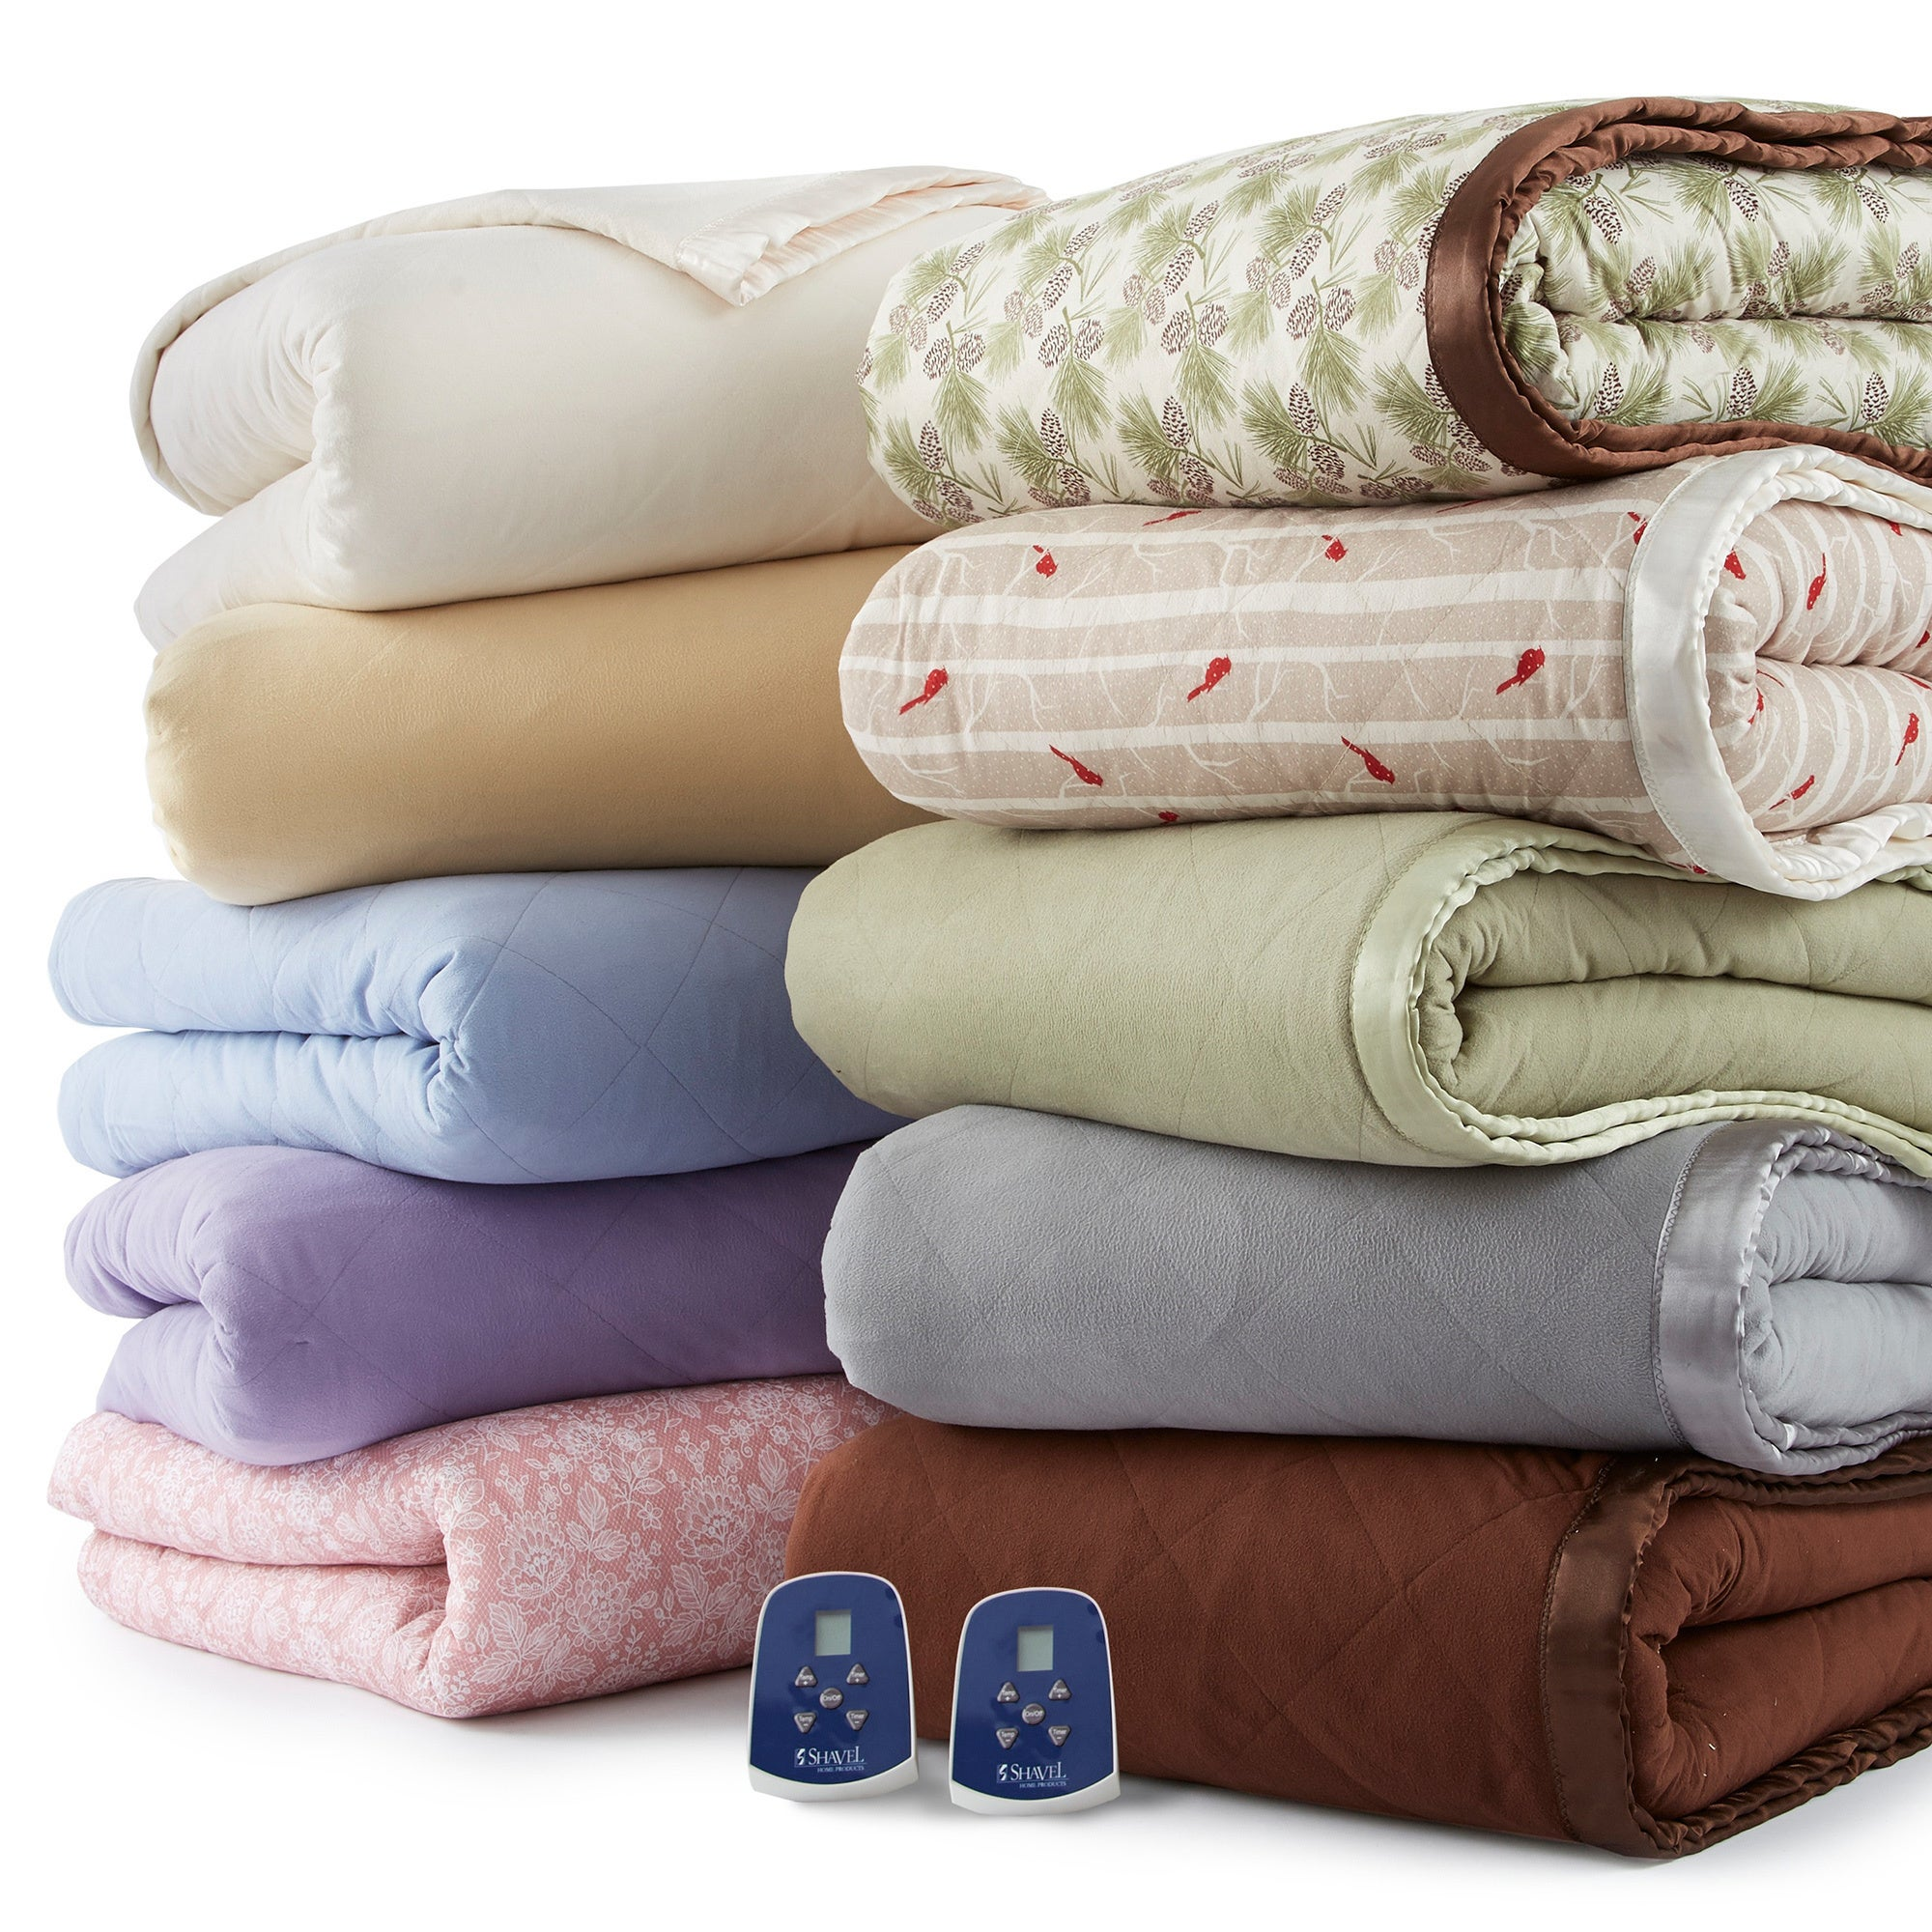 NO BRAND Quilted Micro Flannel Electric Heated Blanket Fu...